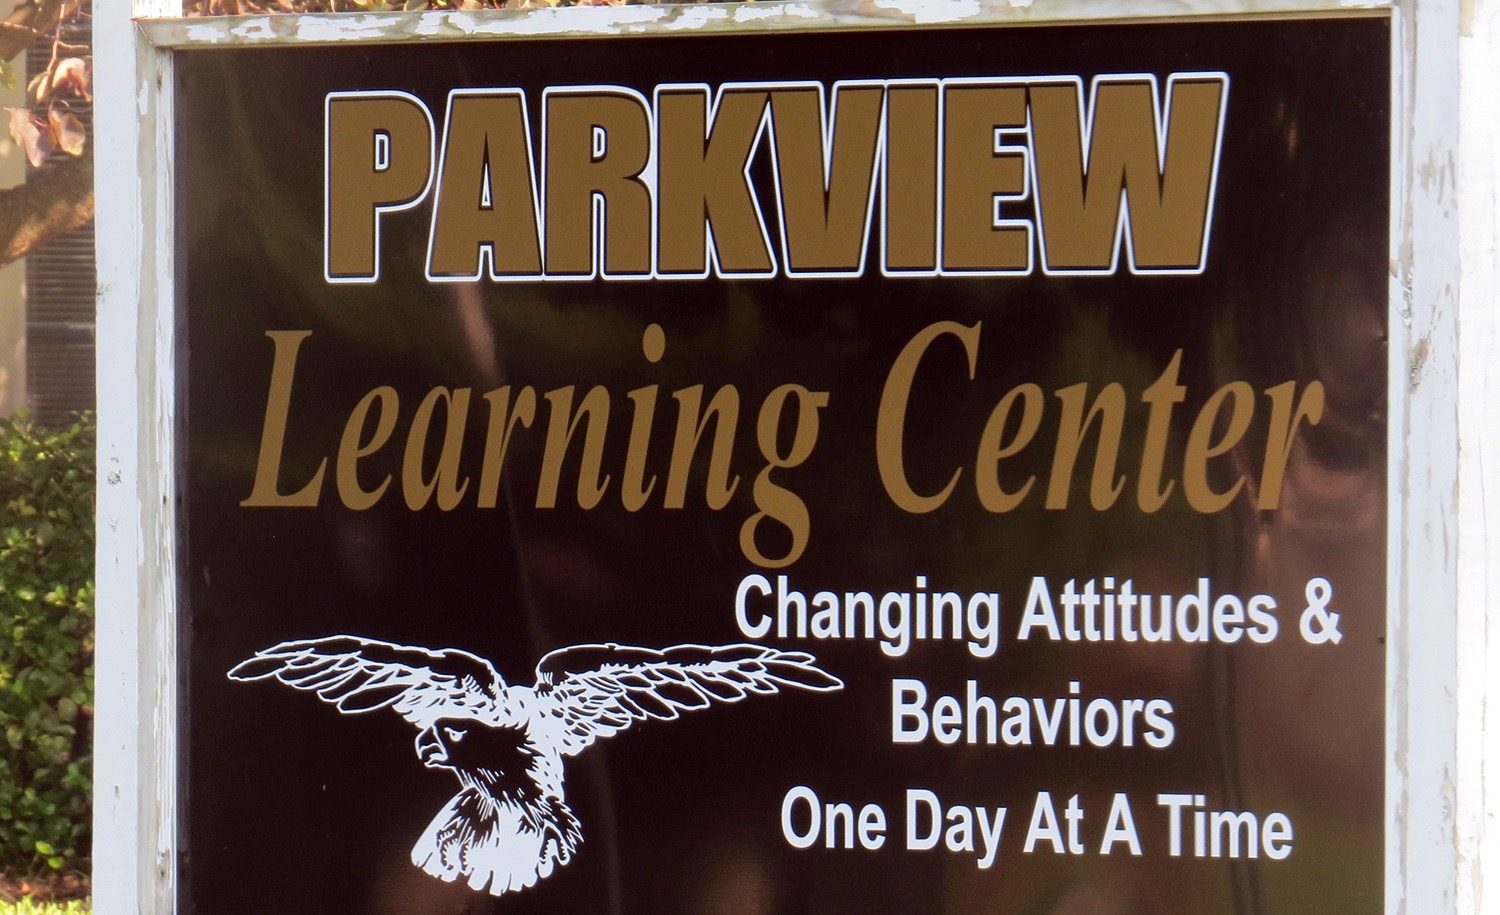 Parkview Learning Center: Changing Attitudes & Behaviors One Day at a Time